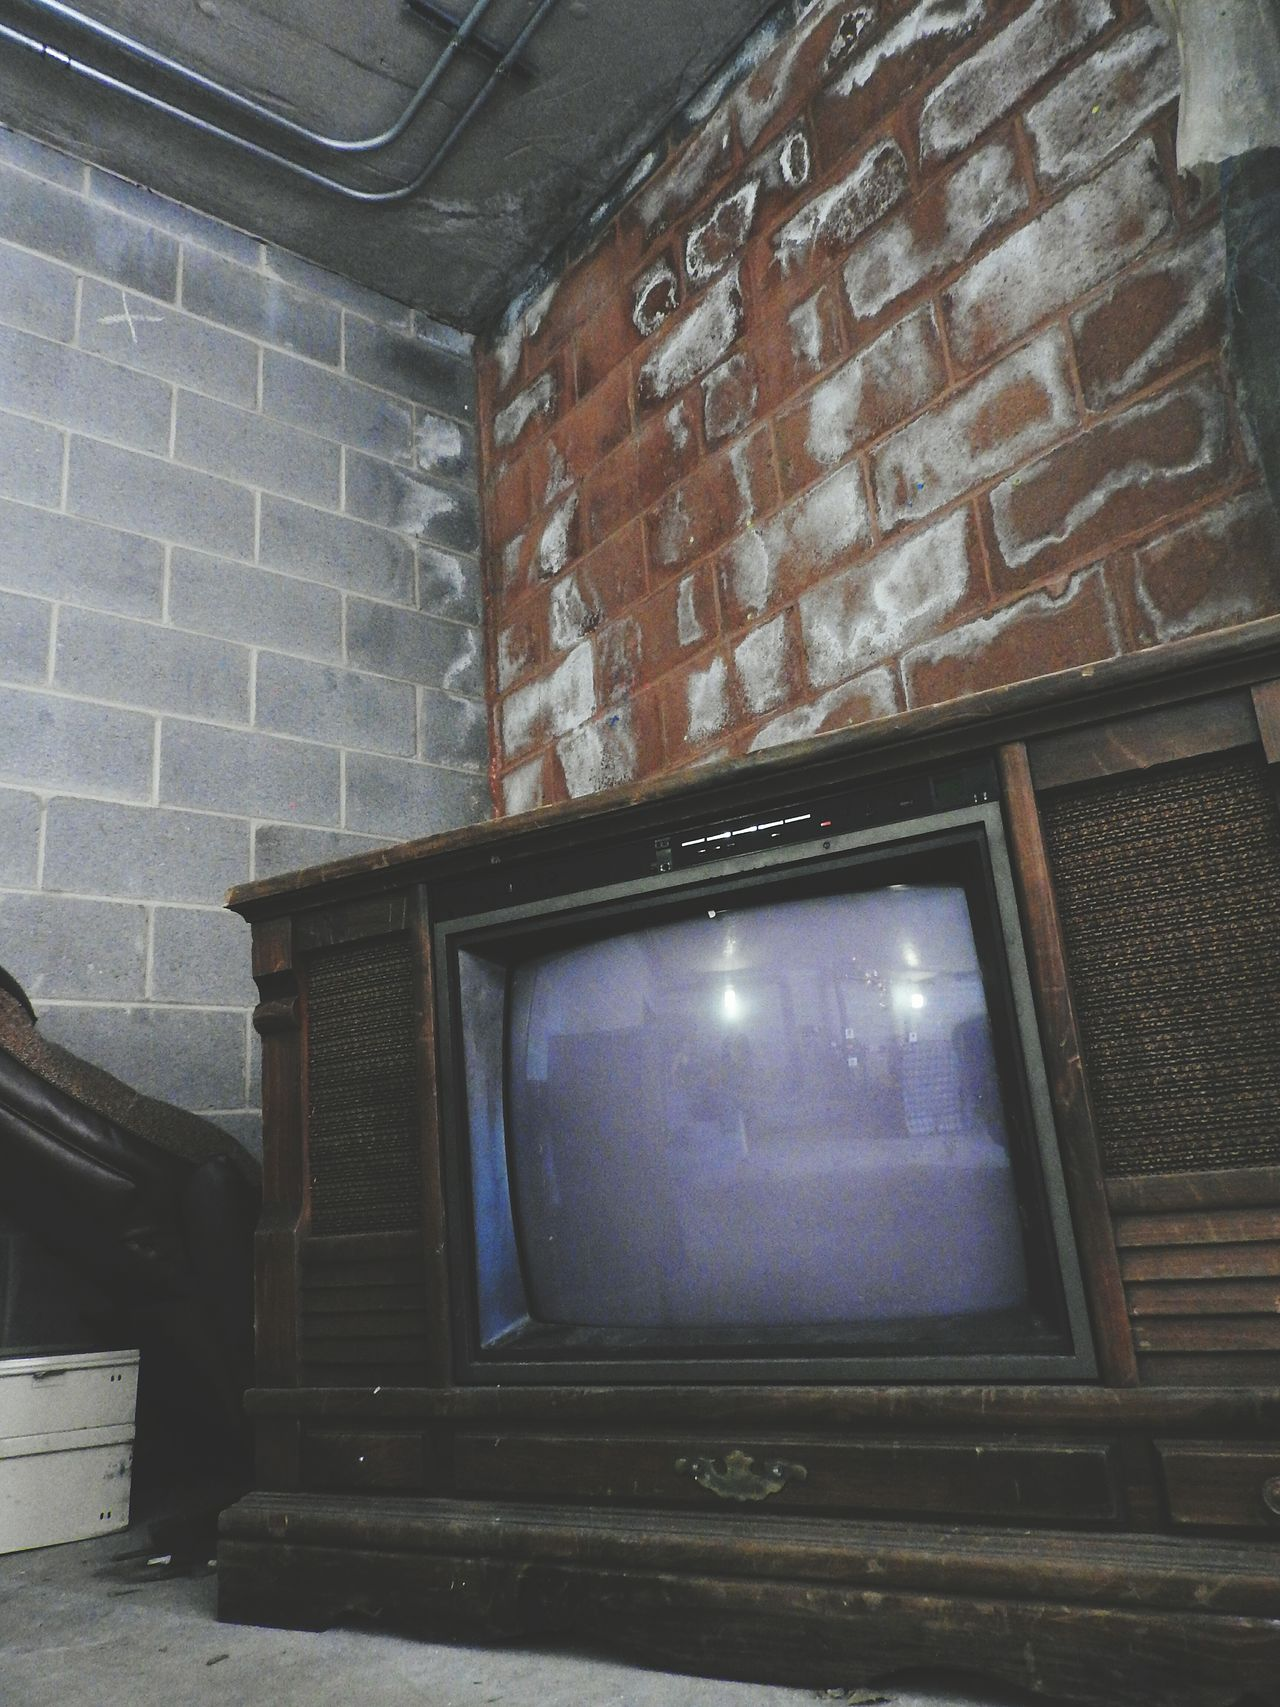 Taking Photos Check This Out EyeEm Gallery Old Buildings Building Interior Fine Art Photography Spooky Atmosphere Creepy Old TV Set Old Television Creepy Places Creepy Building Reflections In The Tv Reflections In The Television Old Brick Building Creepy Atmoshpere